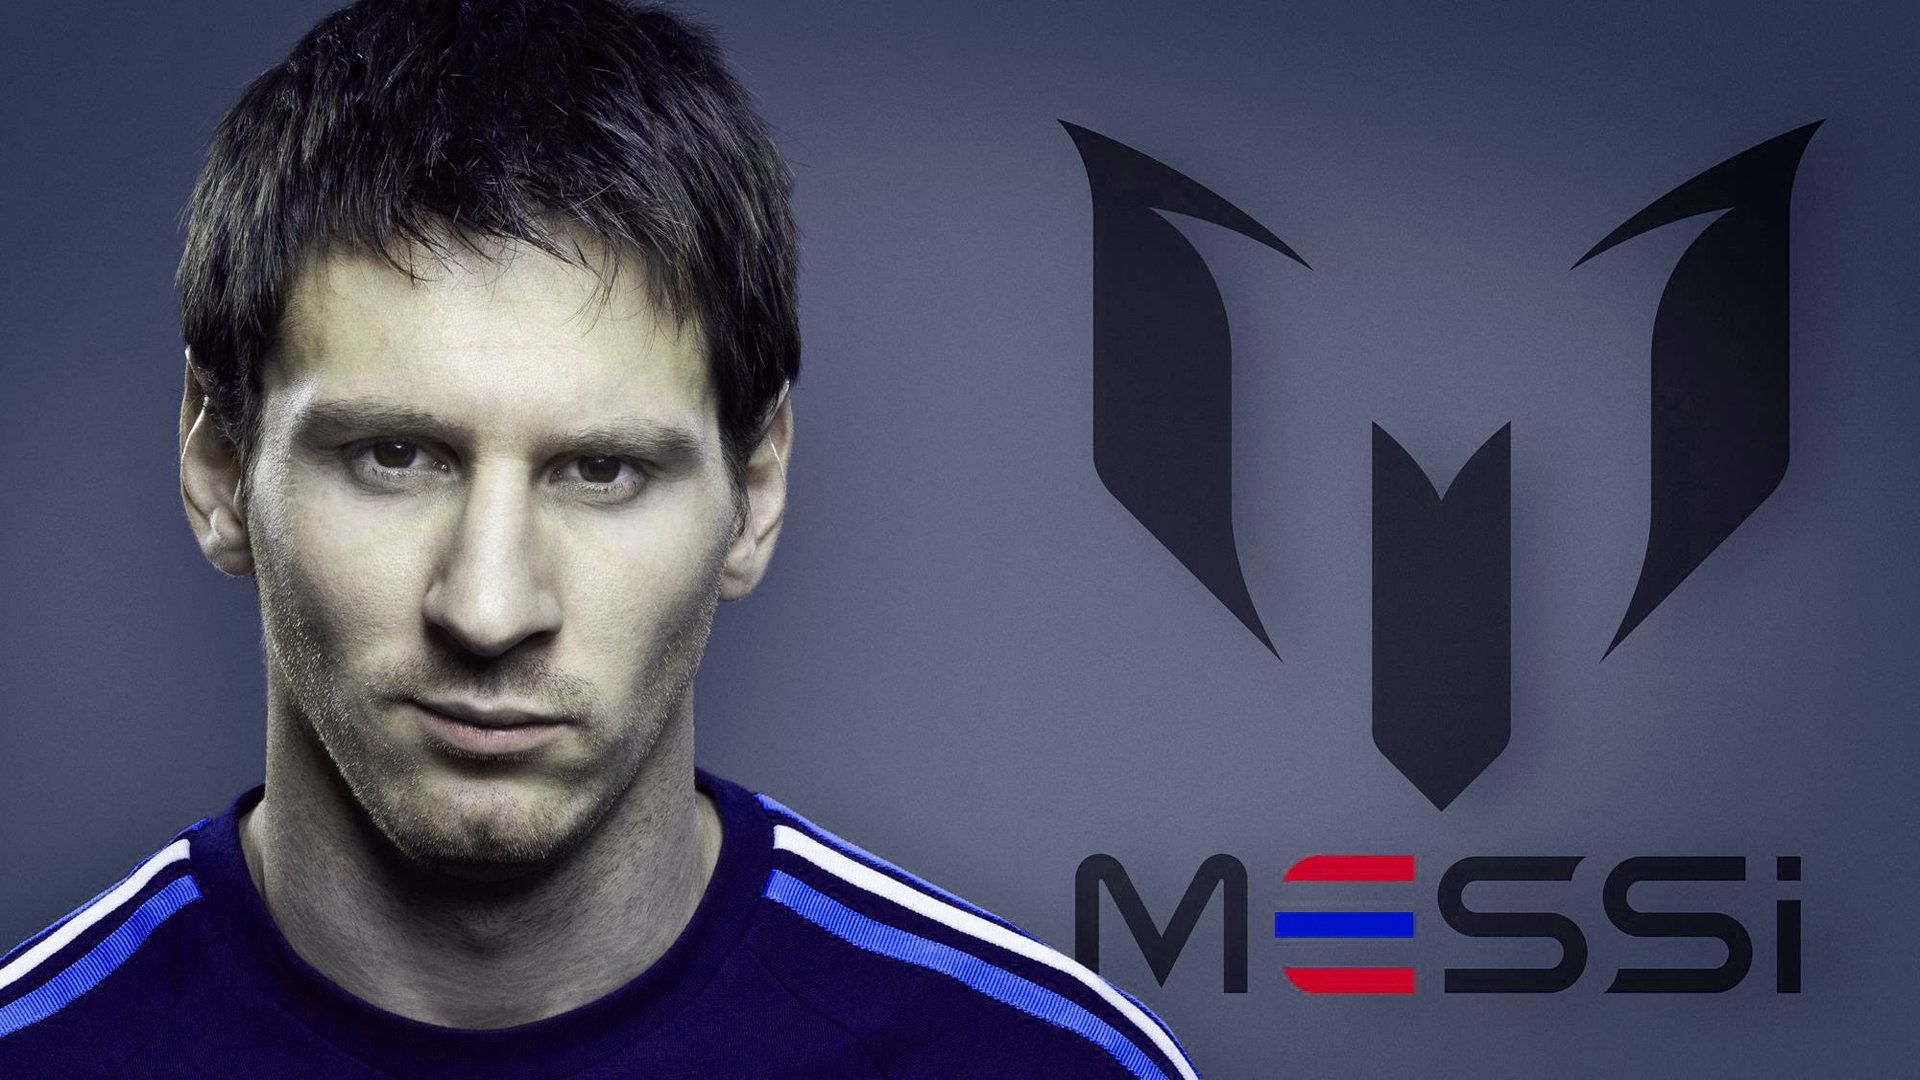 Messi Football Wallpapers HD 1920x1080